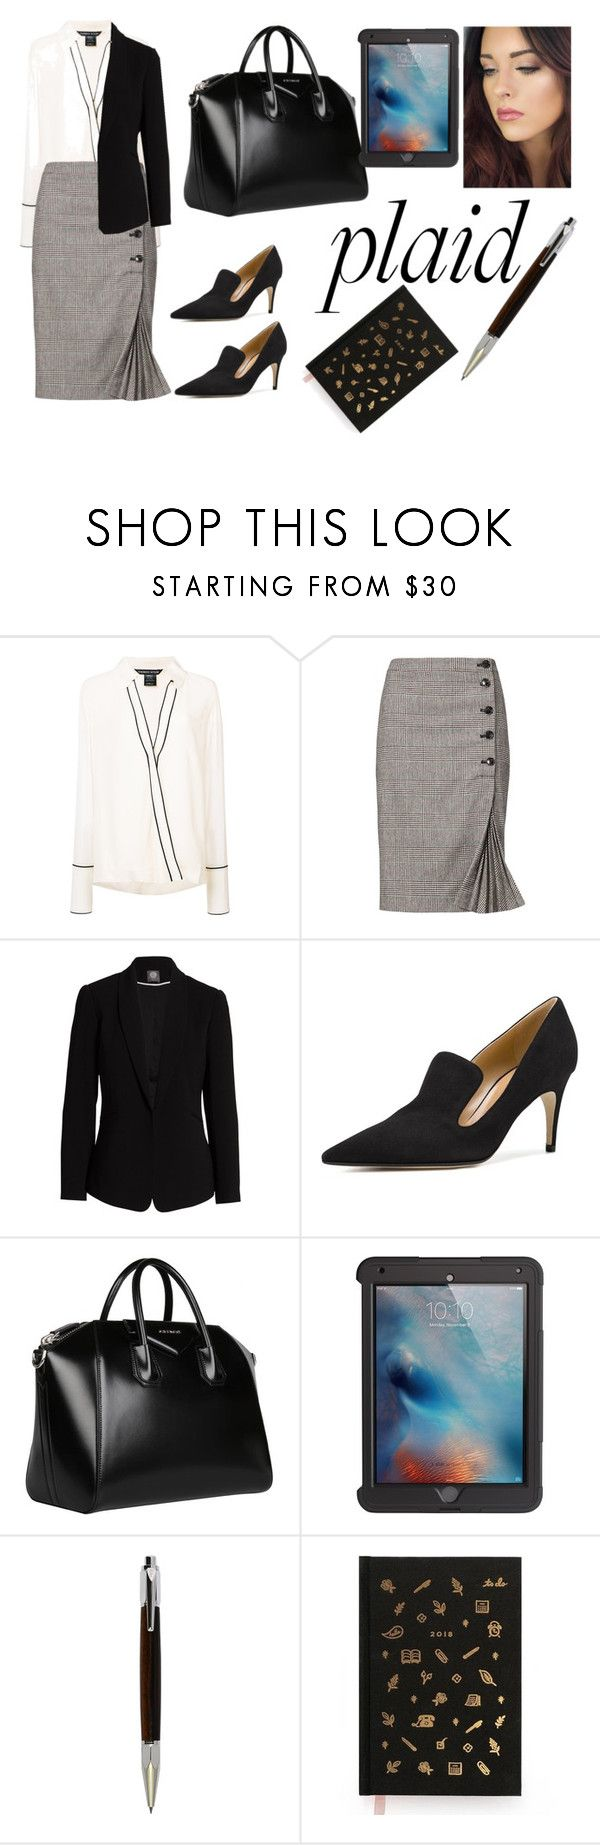 """""""Plaid office"""" by zonecoquette ❤ liked on Polyvore featuring Thomas Wylde, Vince Camuto, Givenchy, Griffin, RIFLE and today"""